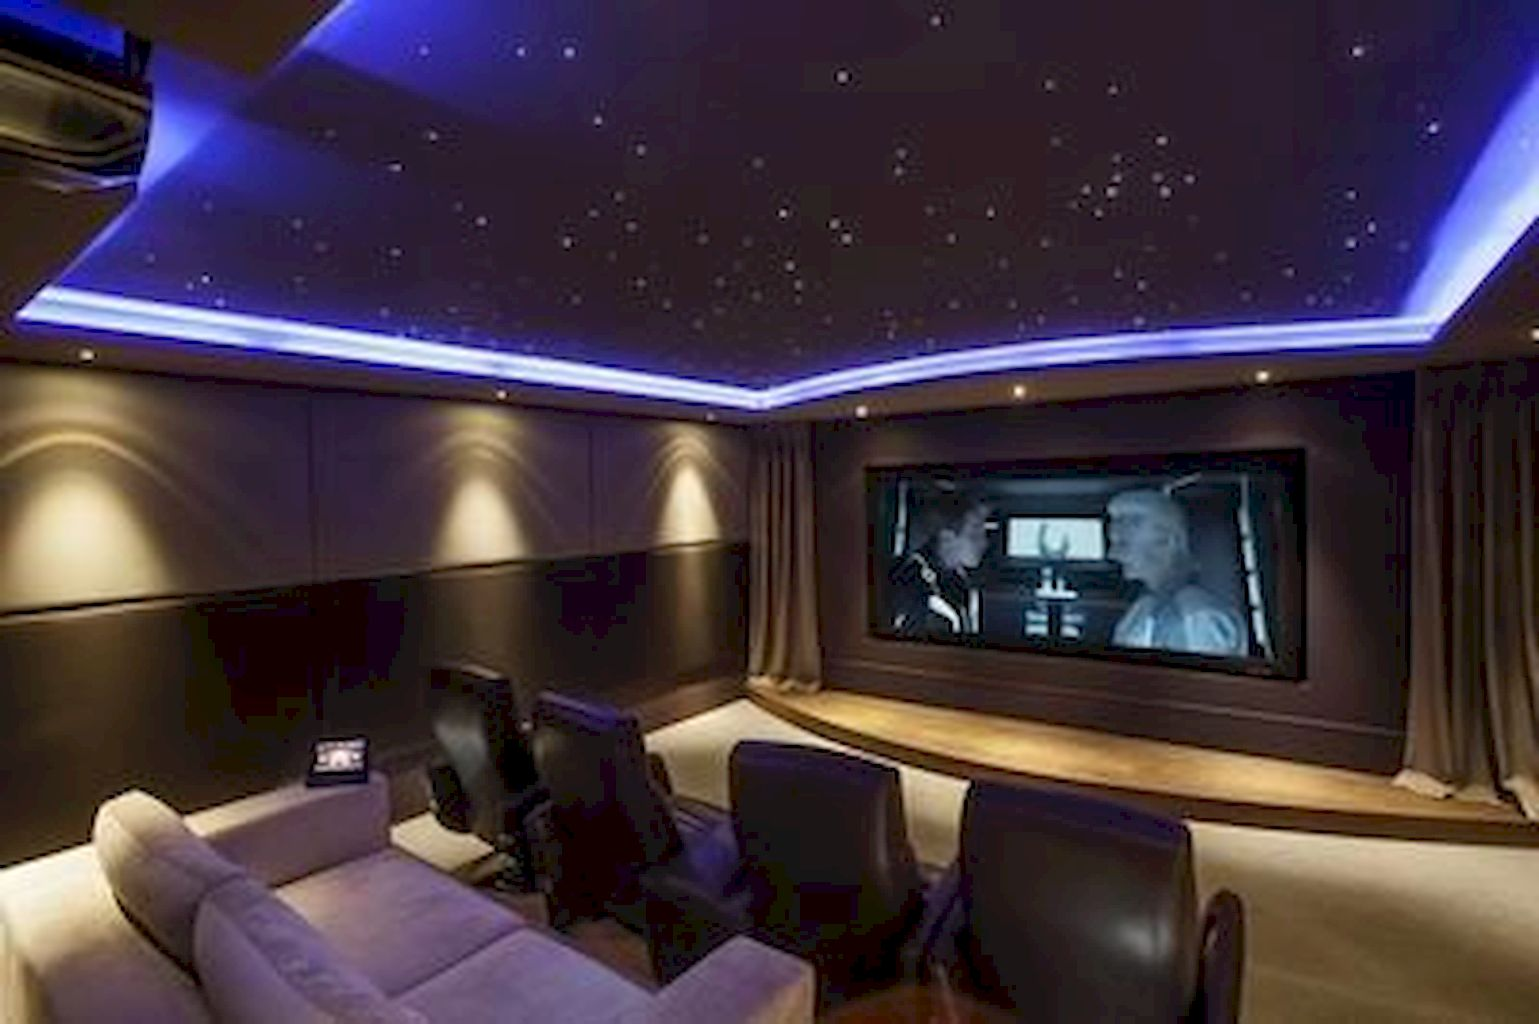 Home Cinema176